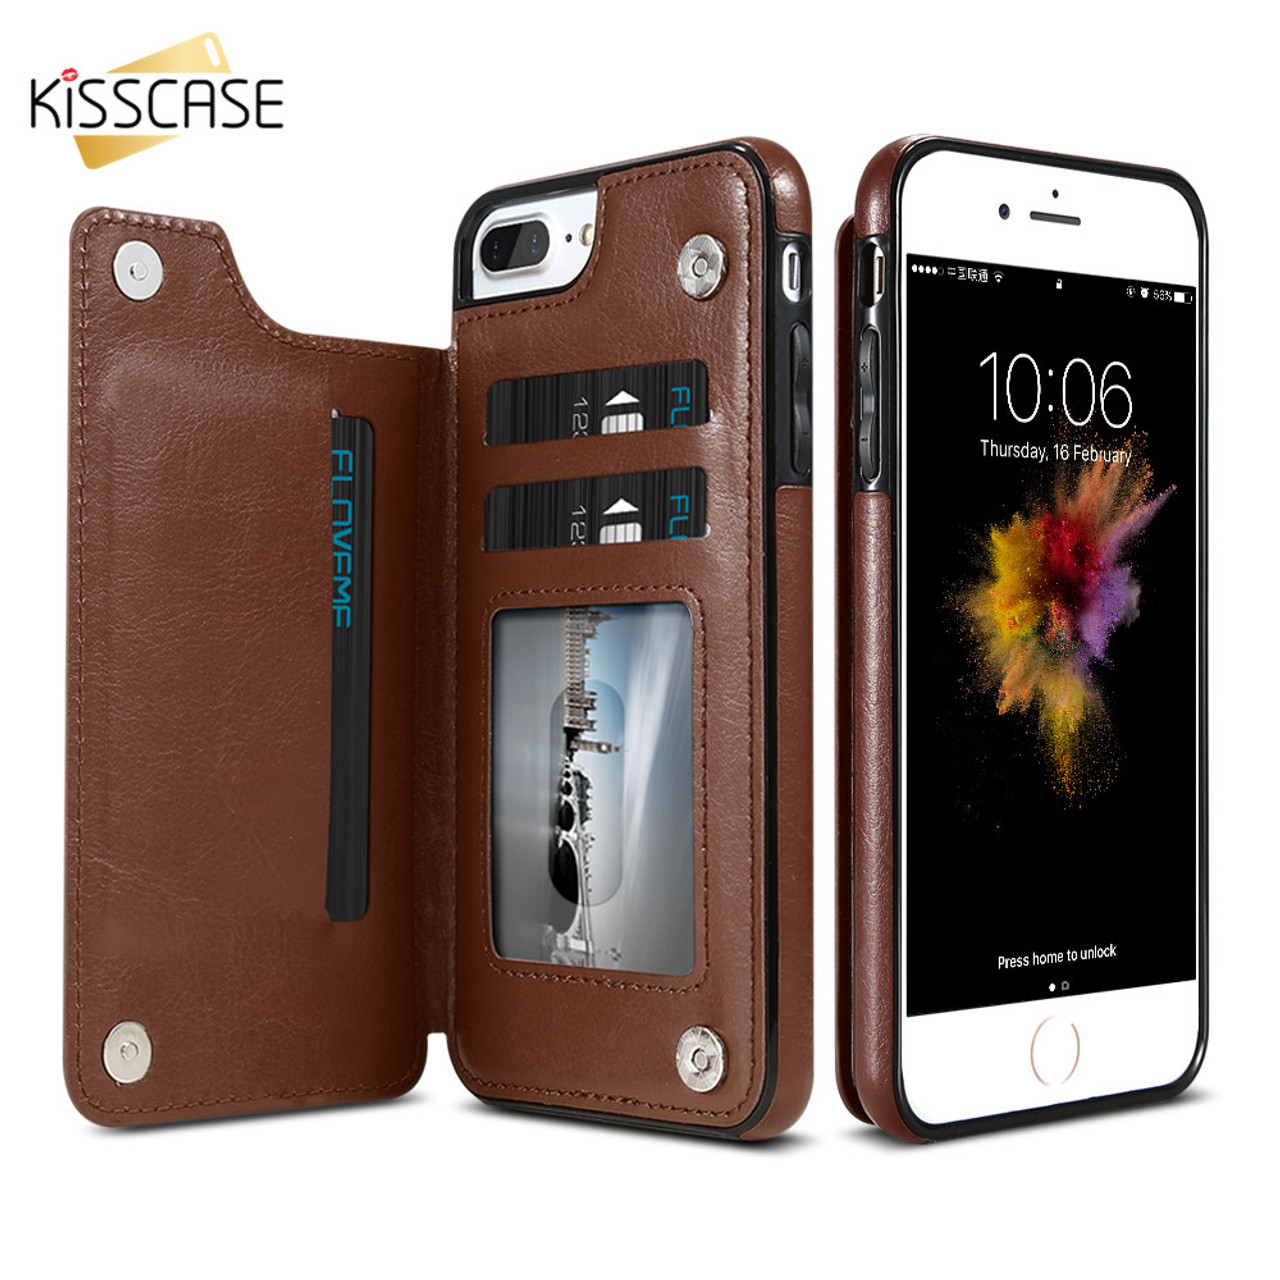 5ac845a4c56e91 ... KISSCASE Retro PU Leather Case For iPhone 6 6s 7 Plus Card Holders  Cases Cover For ...